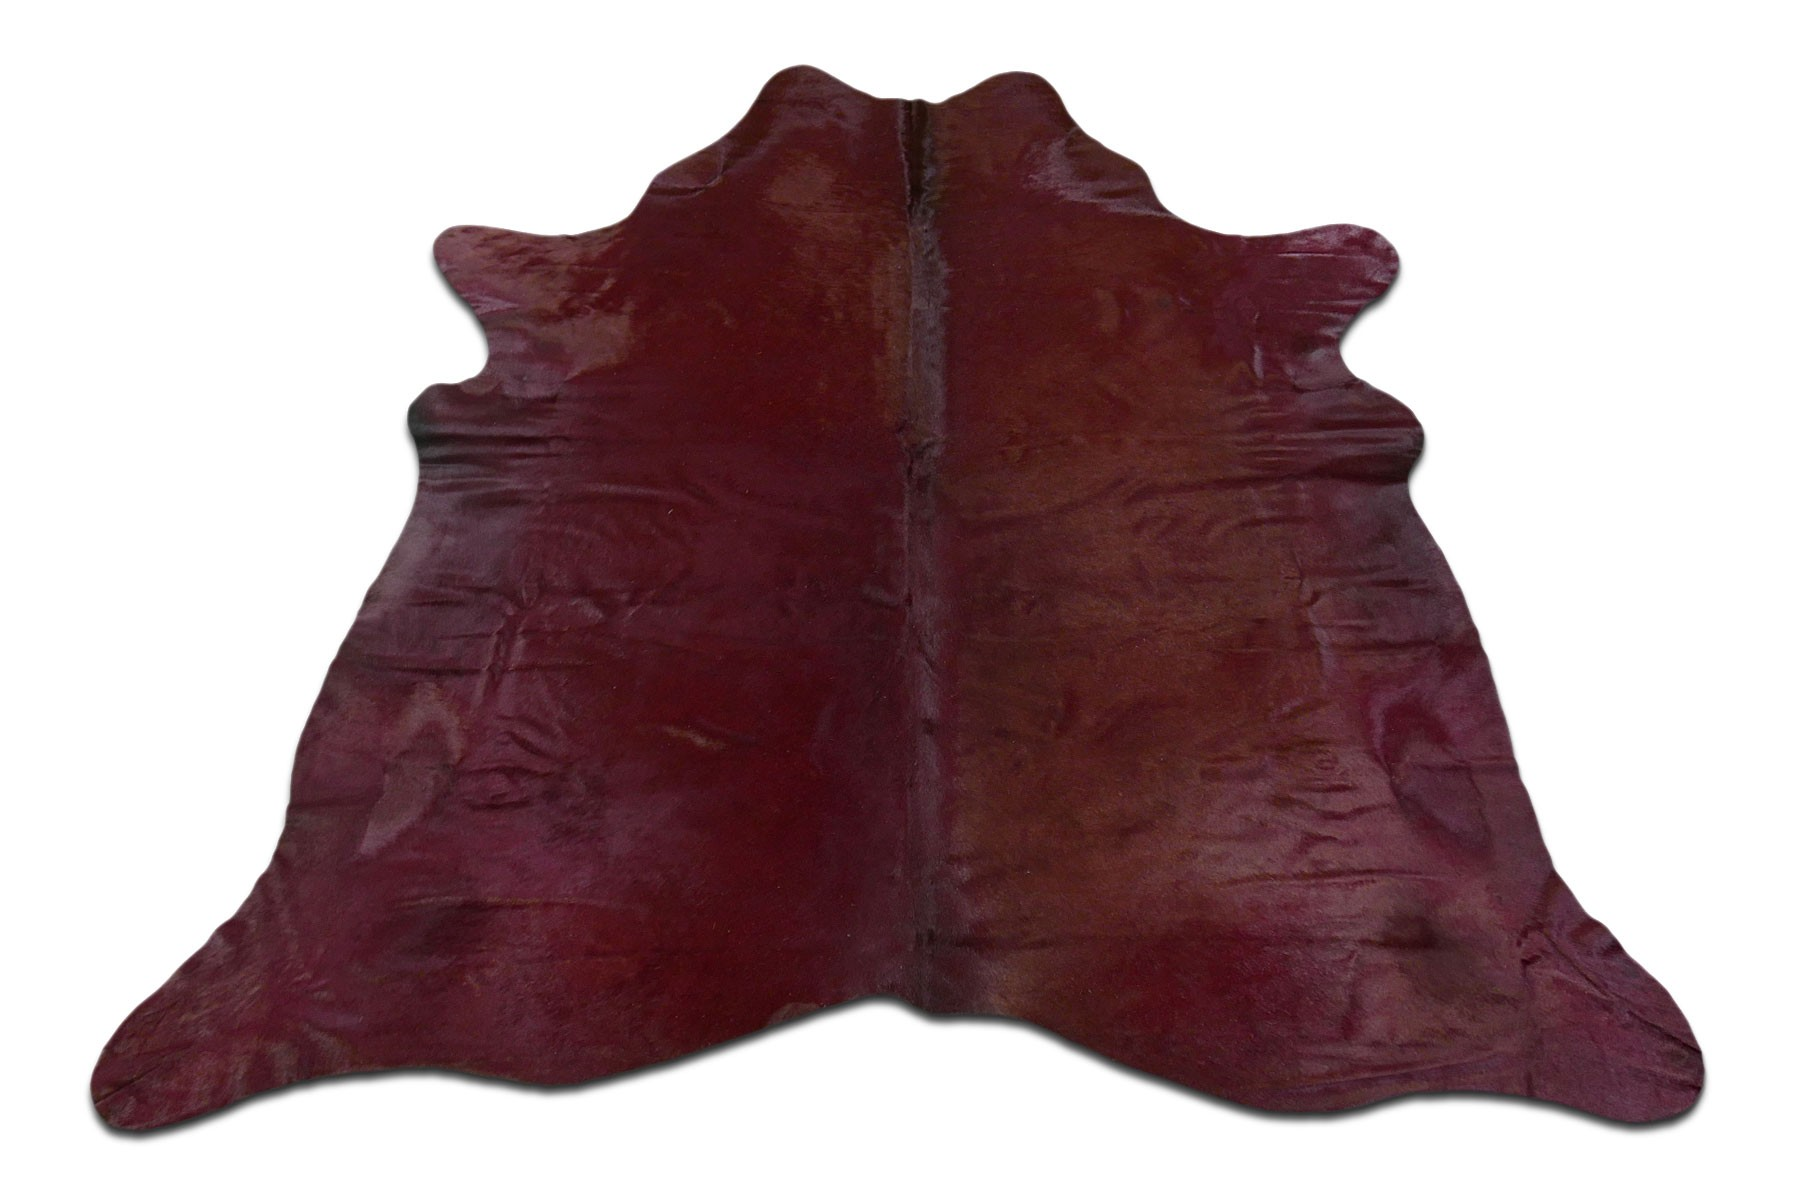 Dyed Burgundy Cowhide Rugs Size: ~7 X 7 ft Dyed Burgundy Cowhide Rugs